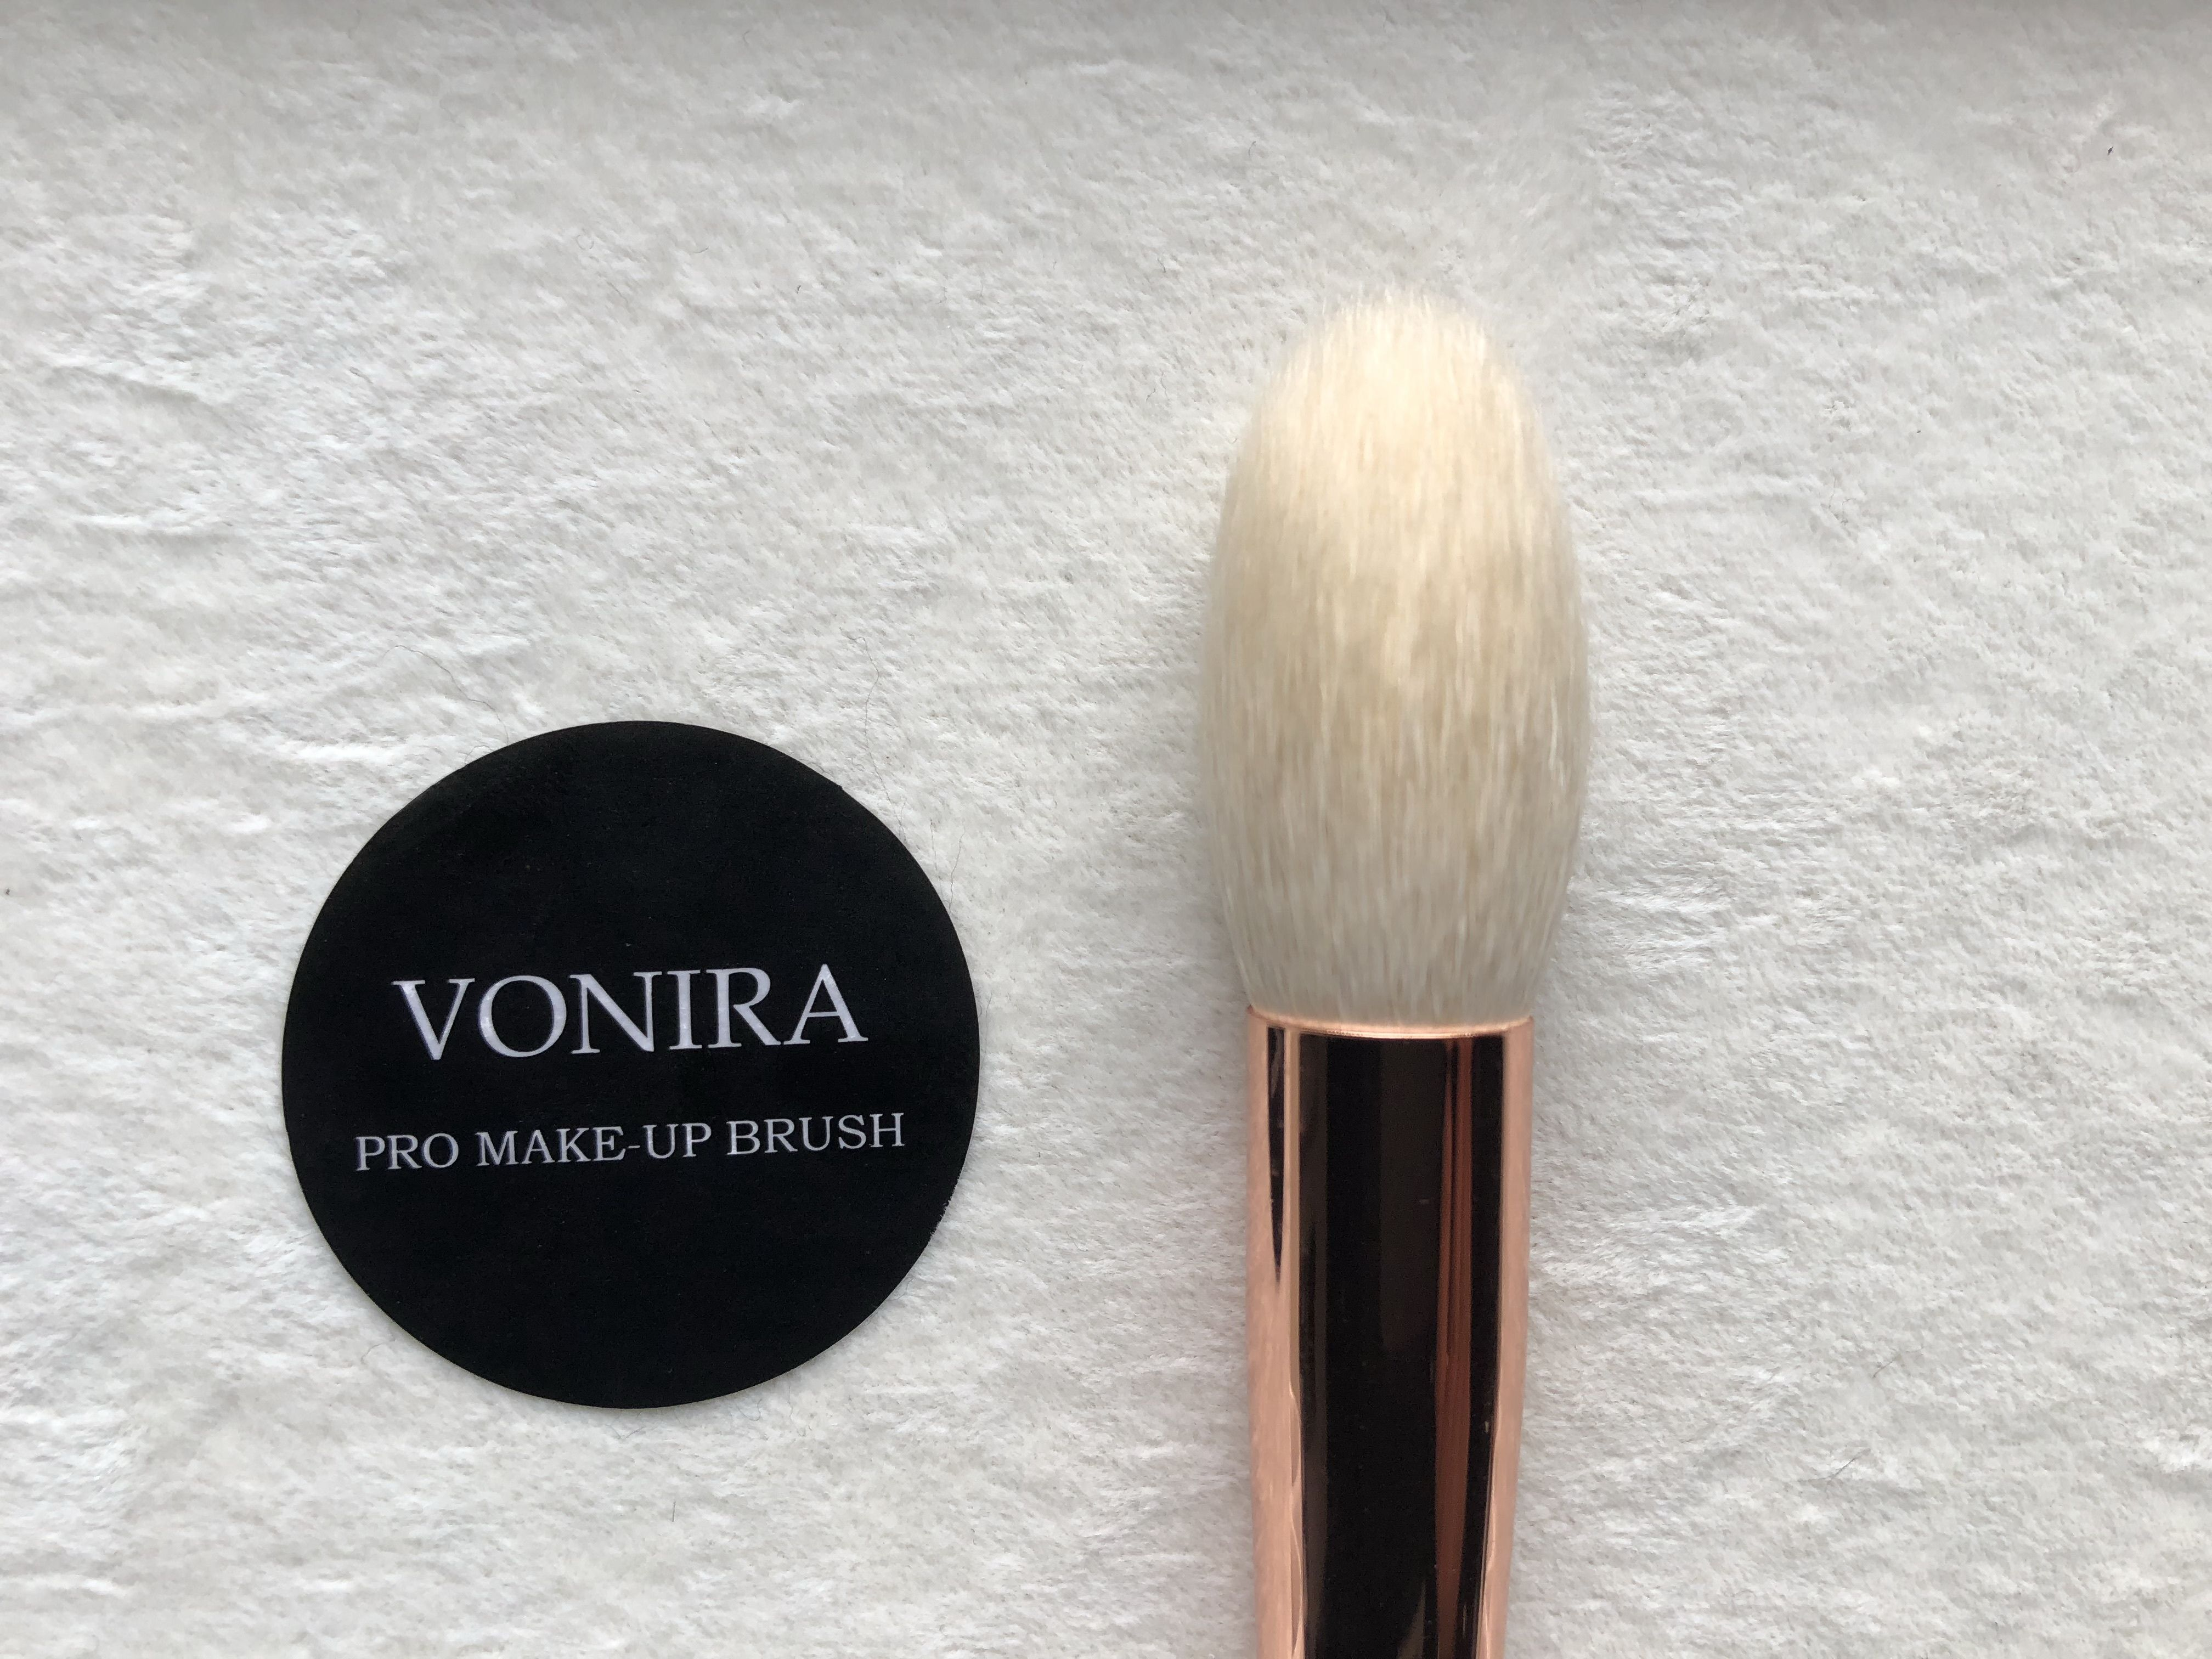 Large pencil powder brush head with white goat hair.